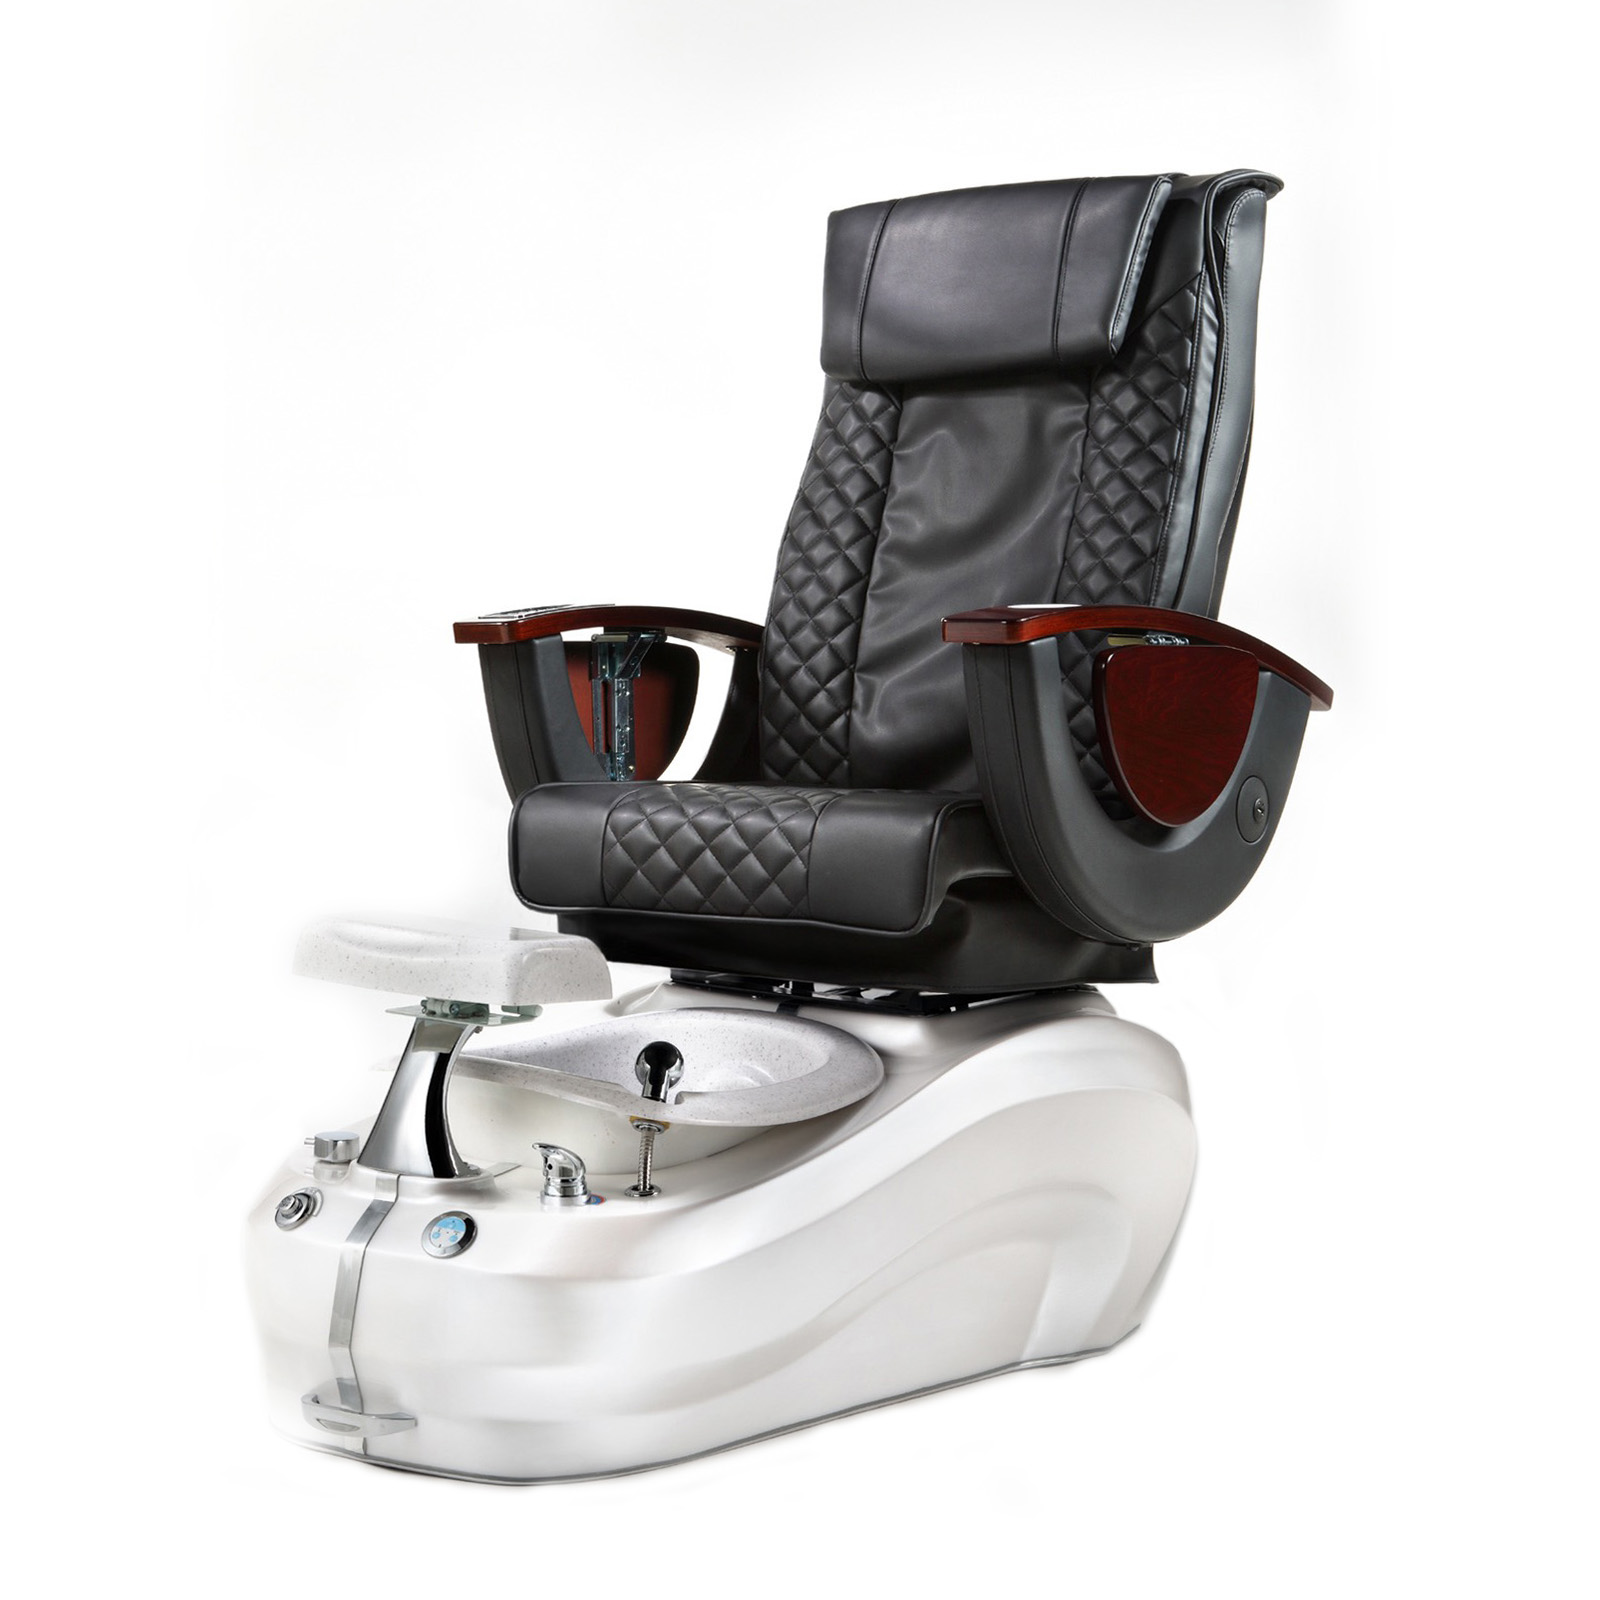 iRrelax 2020 Spa Pedicure Chair - Md001